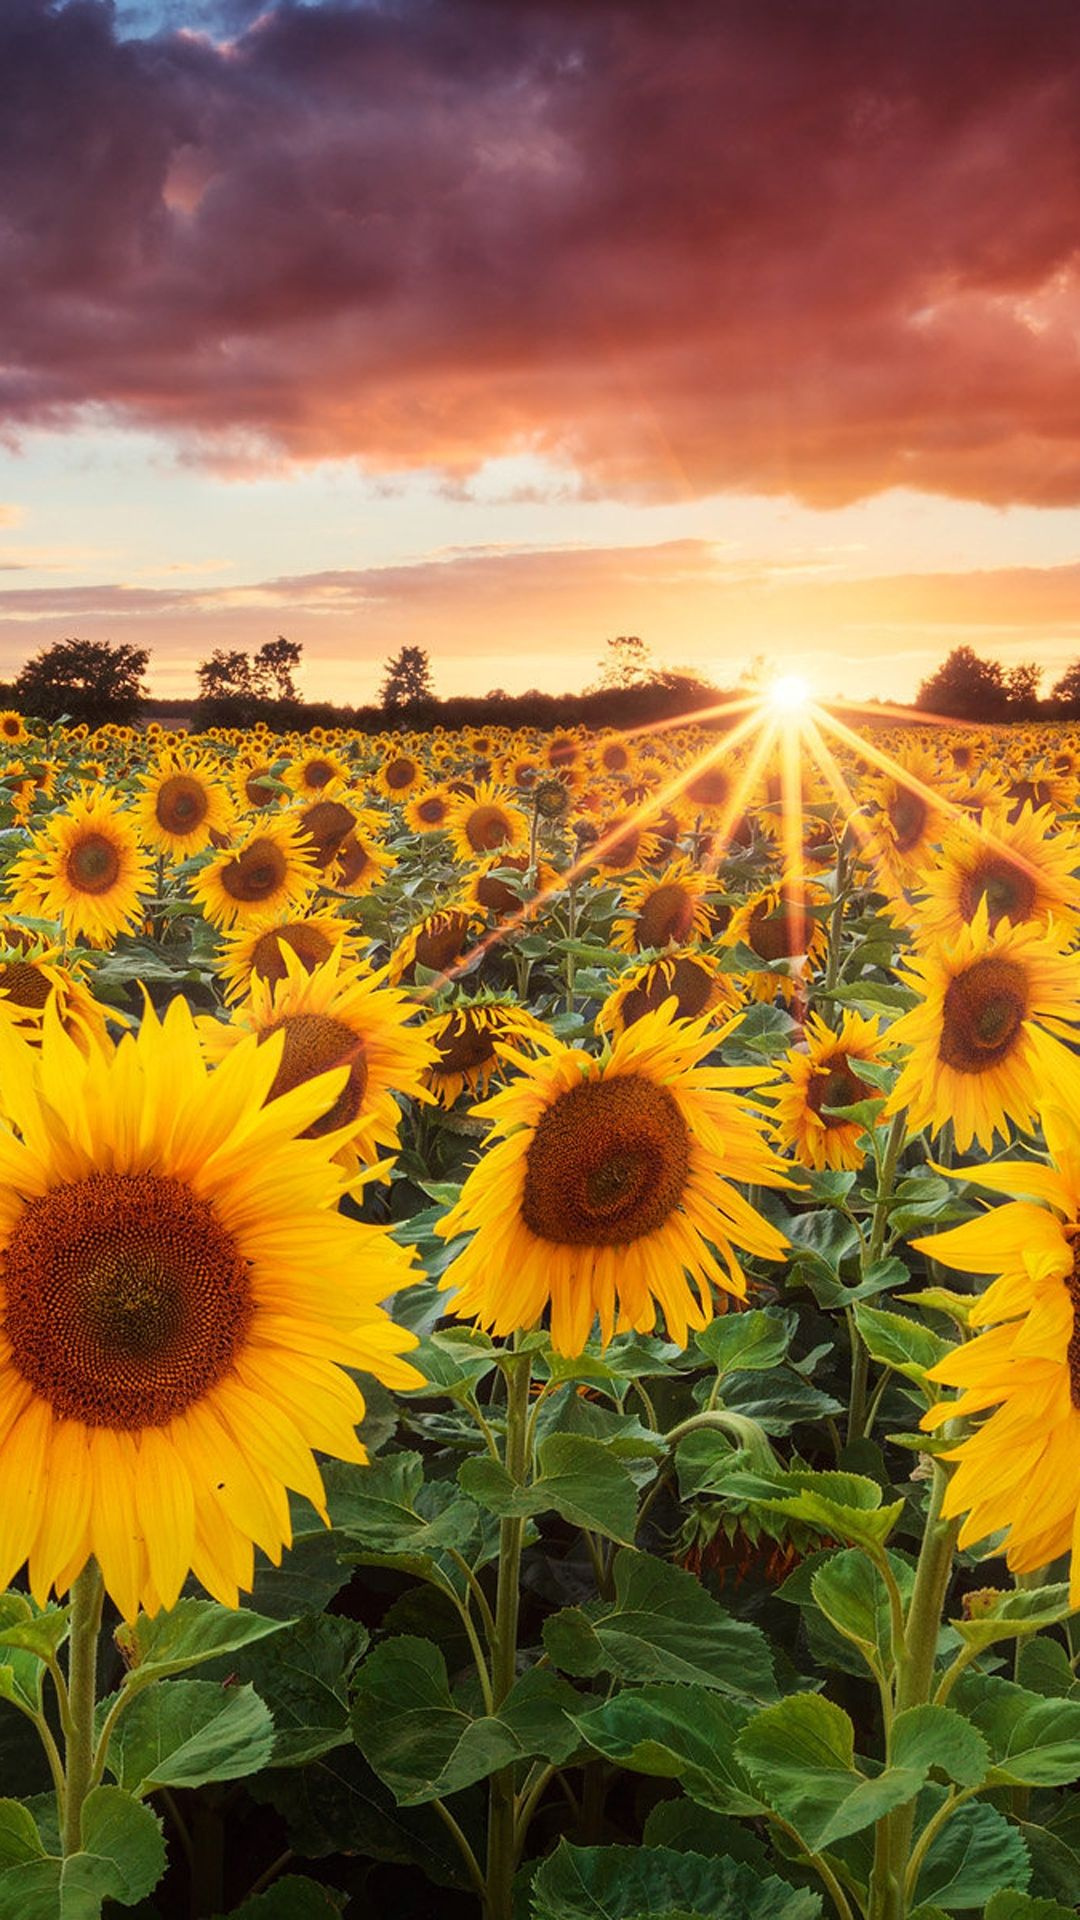 Sunflower May U Have All The Joy Ur Heart Can Hold Sunflowers Background Sunflower Wallpaper Sunflower Pictures